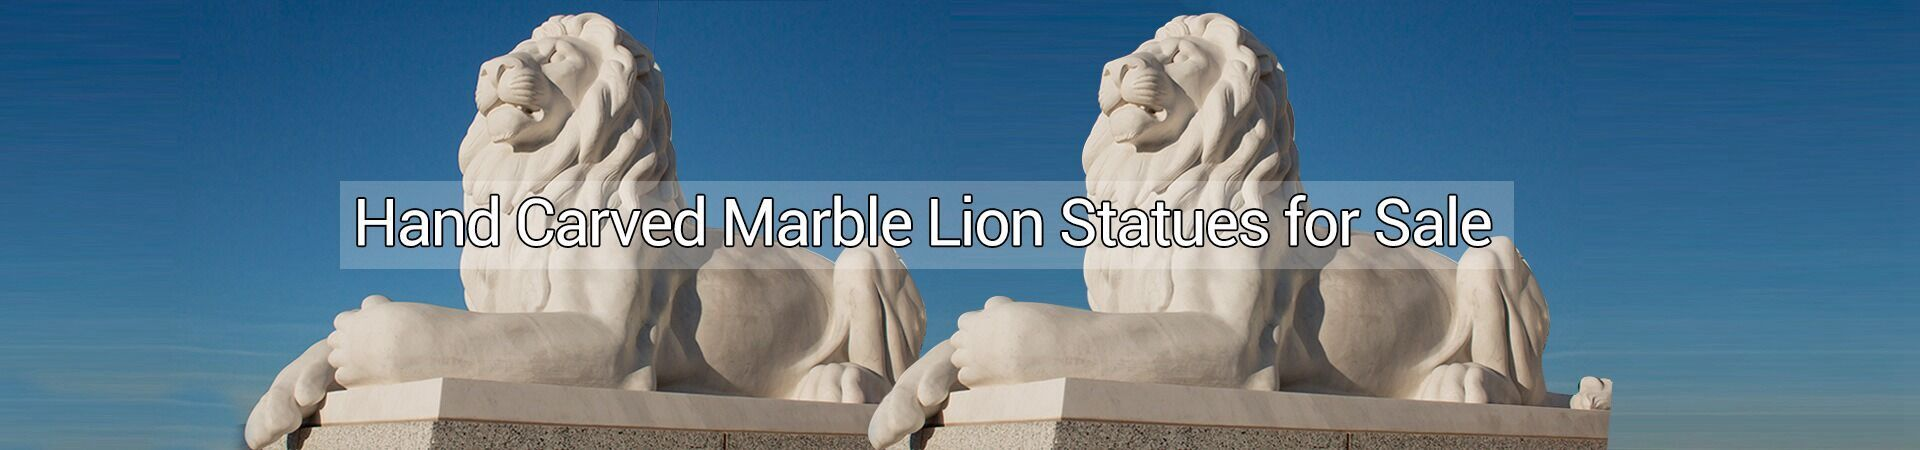 lion statues for guardian crying life size marble